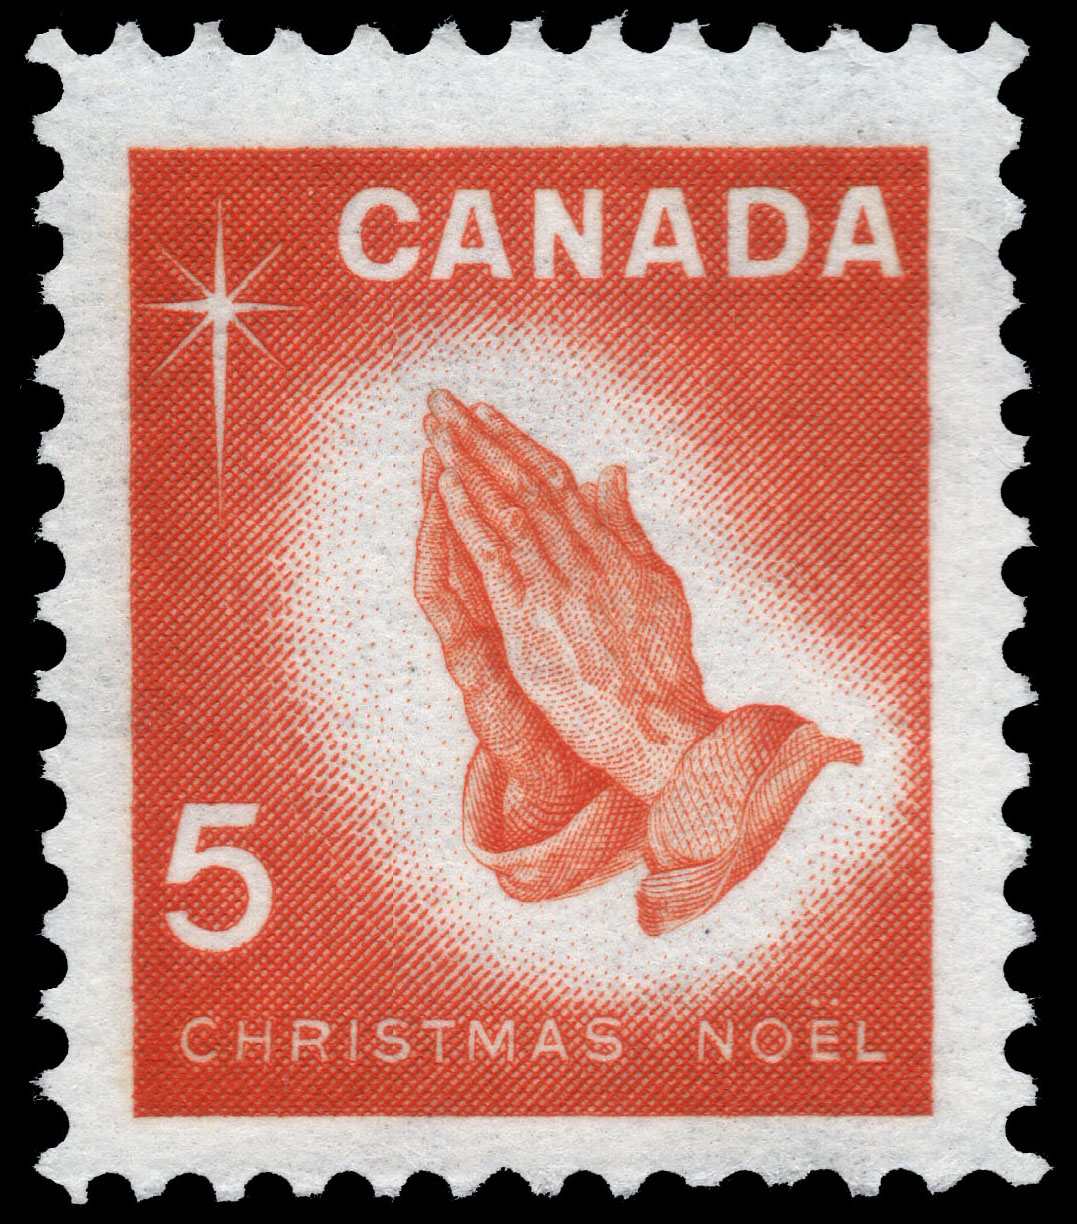 Praying Hands Canada Postage Stamp